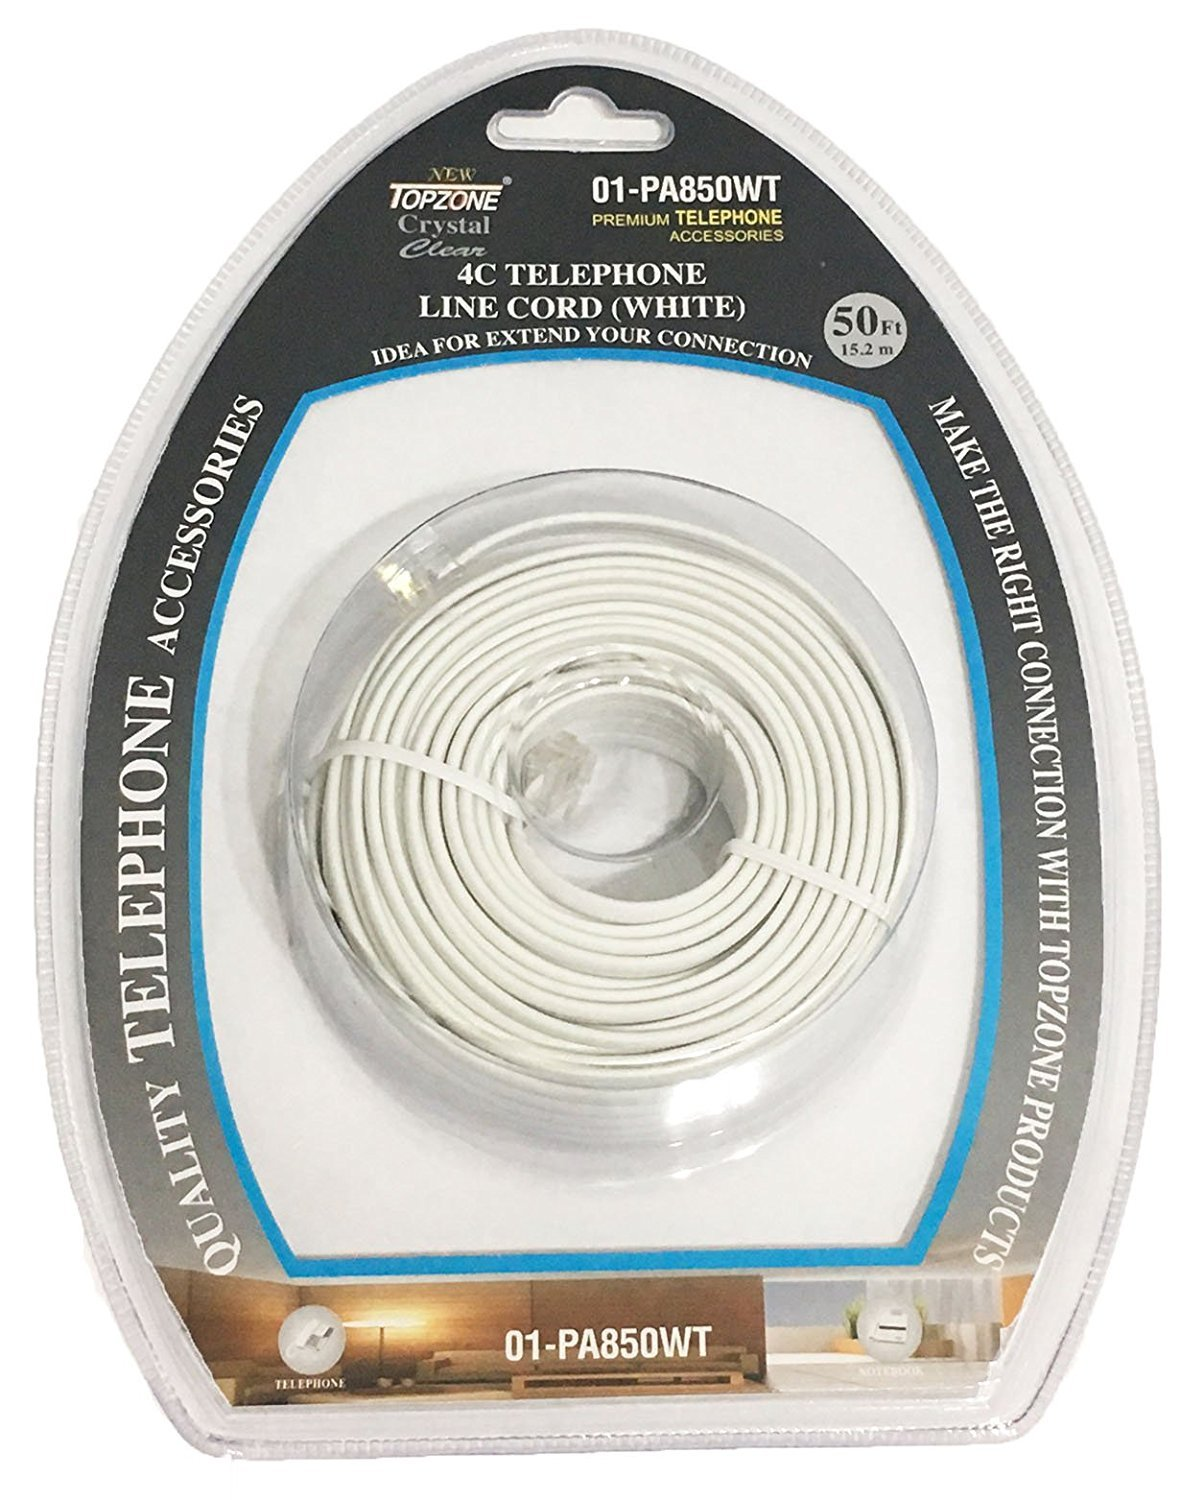 Bistras 25 Ft 4c Telephone Extension Cord Cable Line Wire For Any Wiring Phone Modem Fax Machine